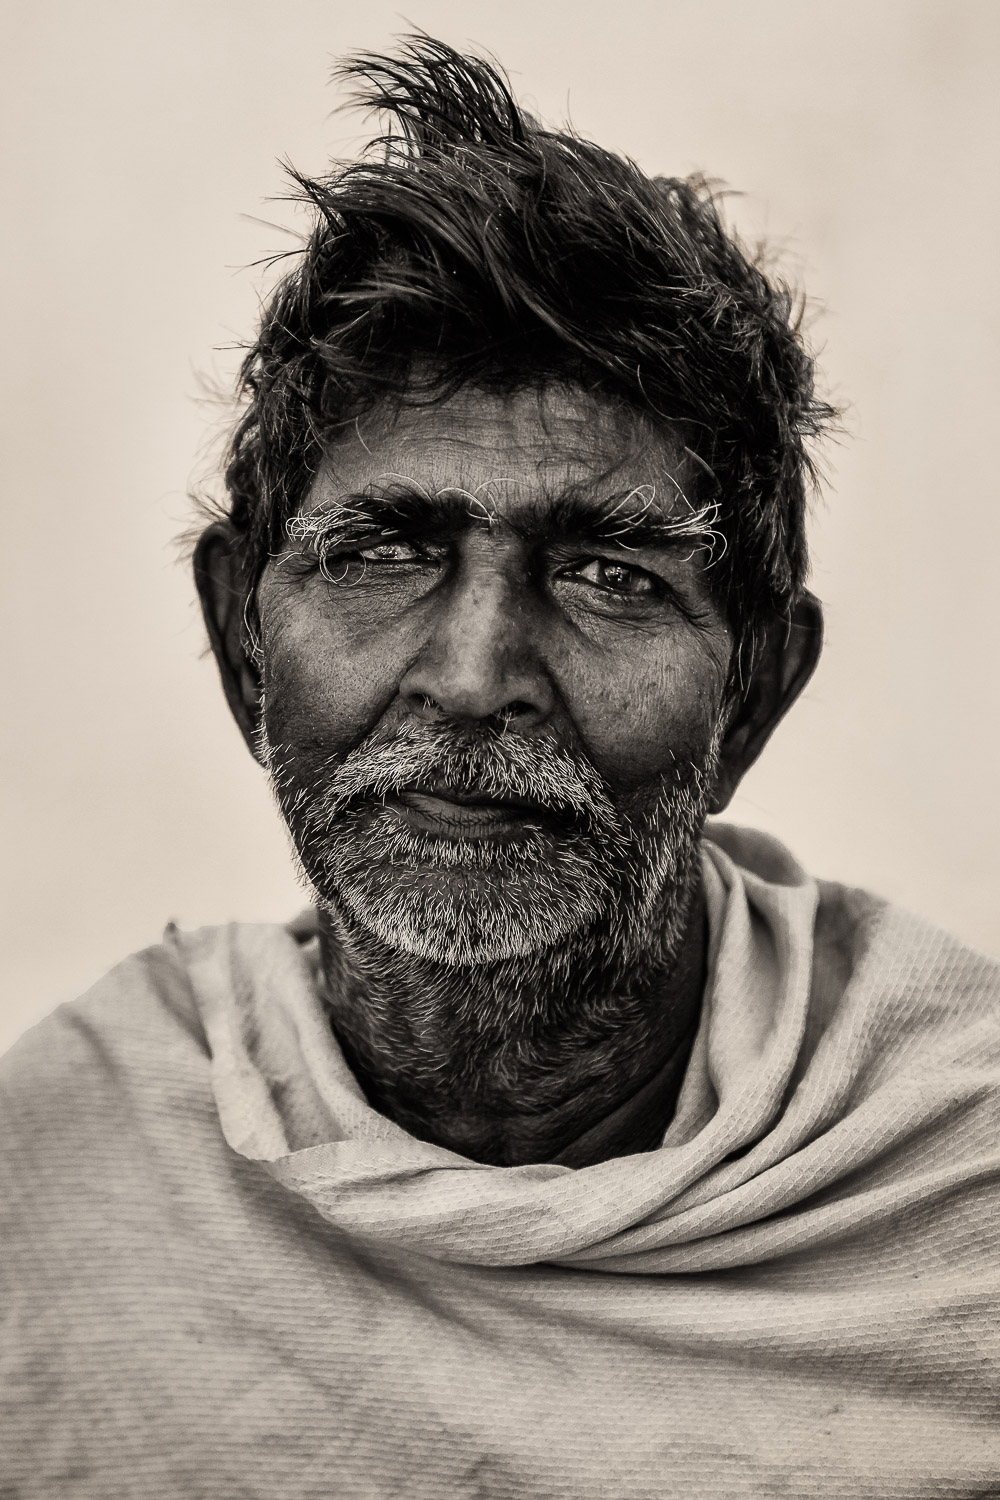 A life very much lived. A dignified man in Chennai, India.